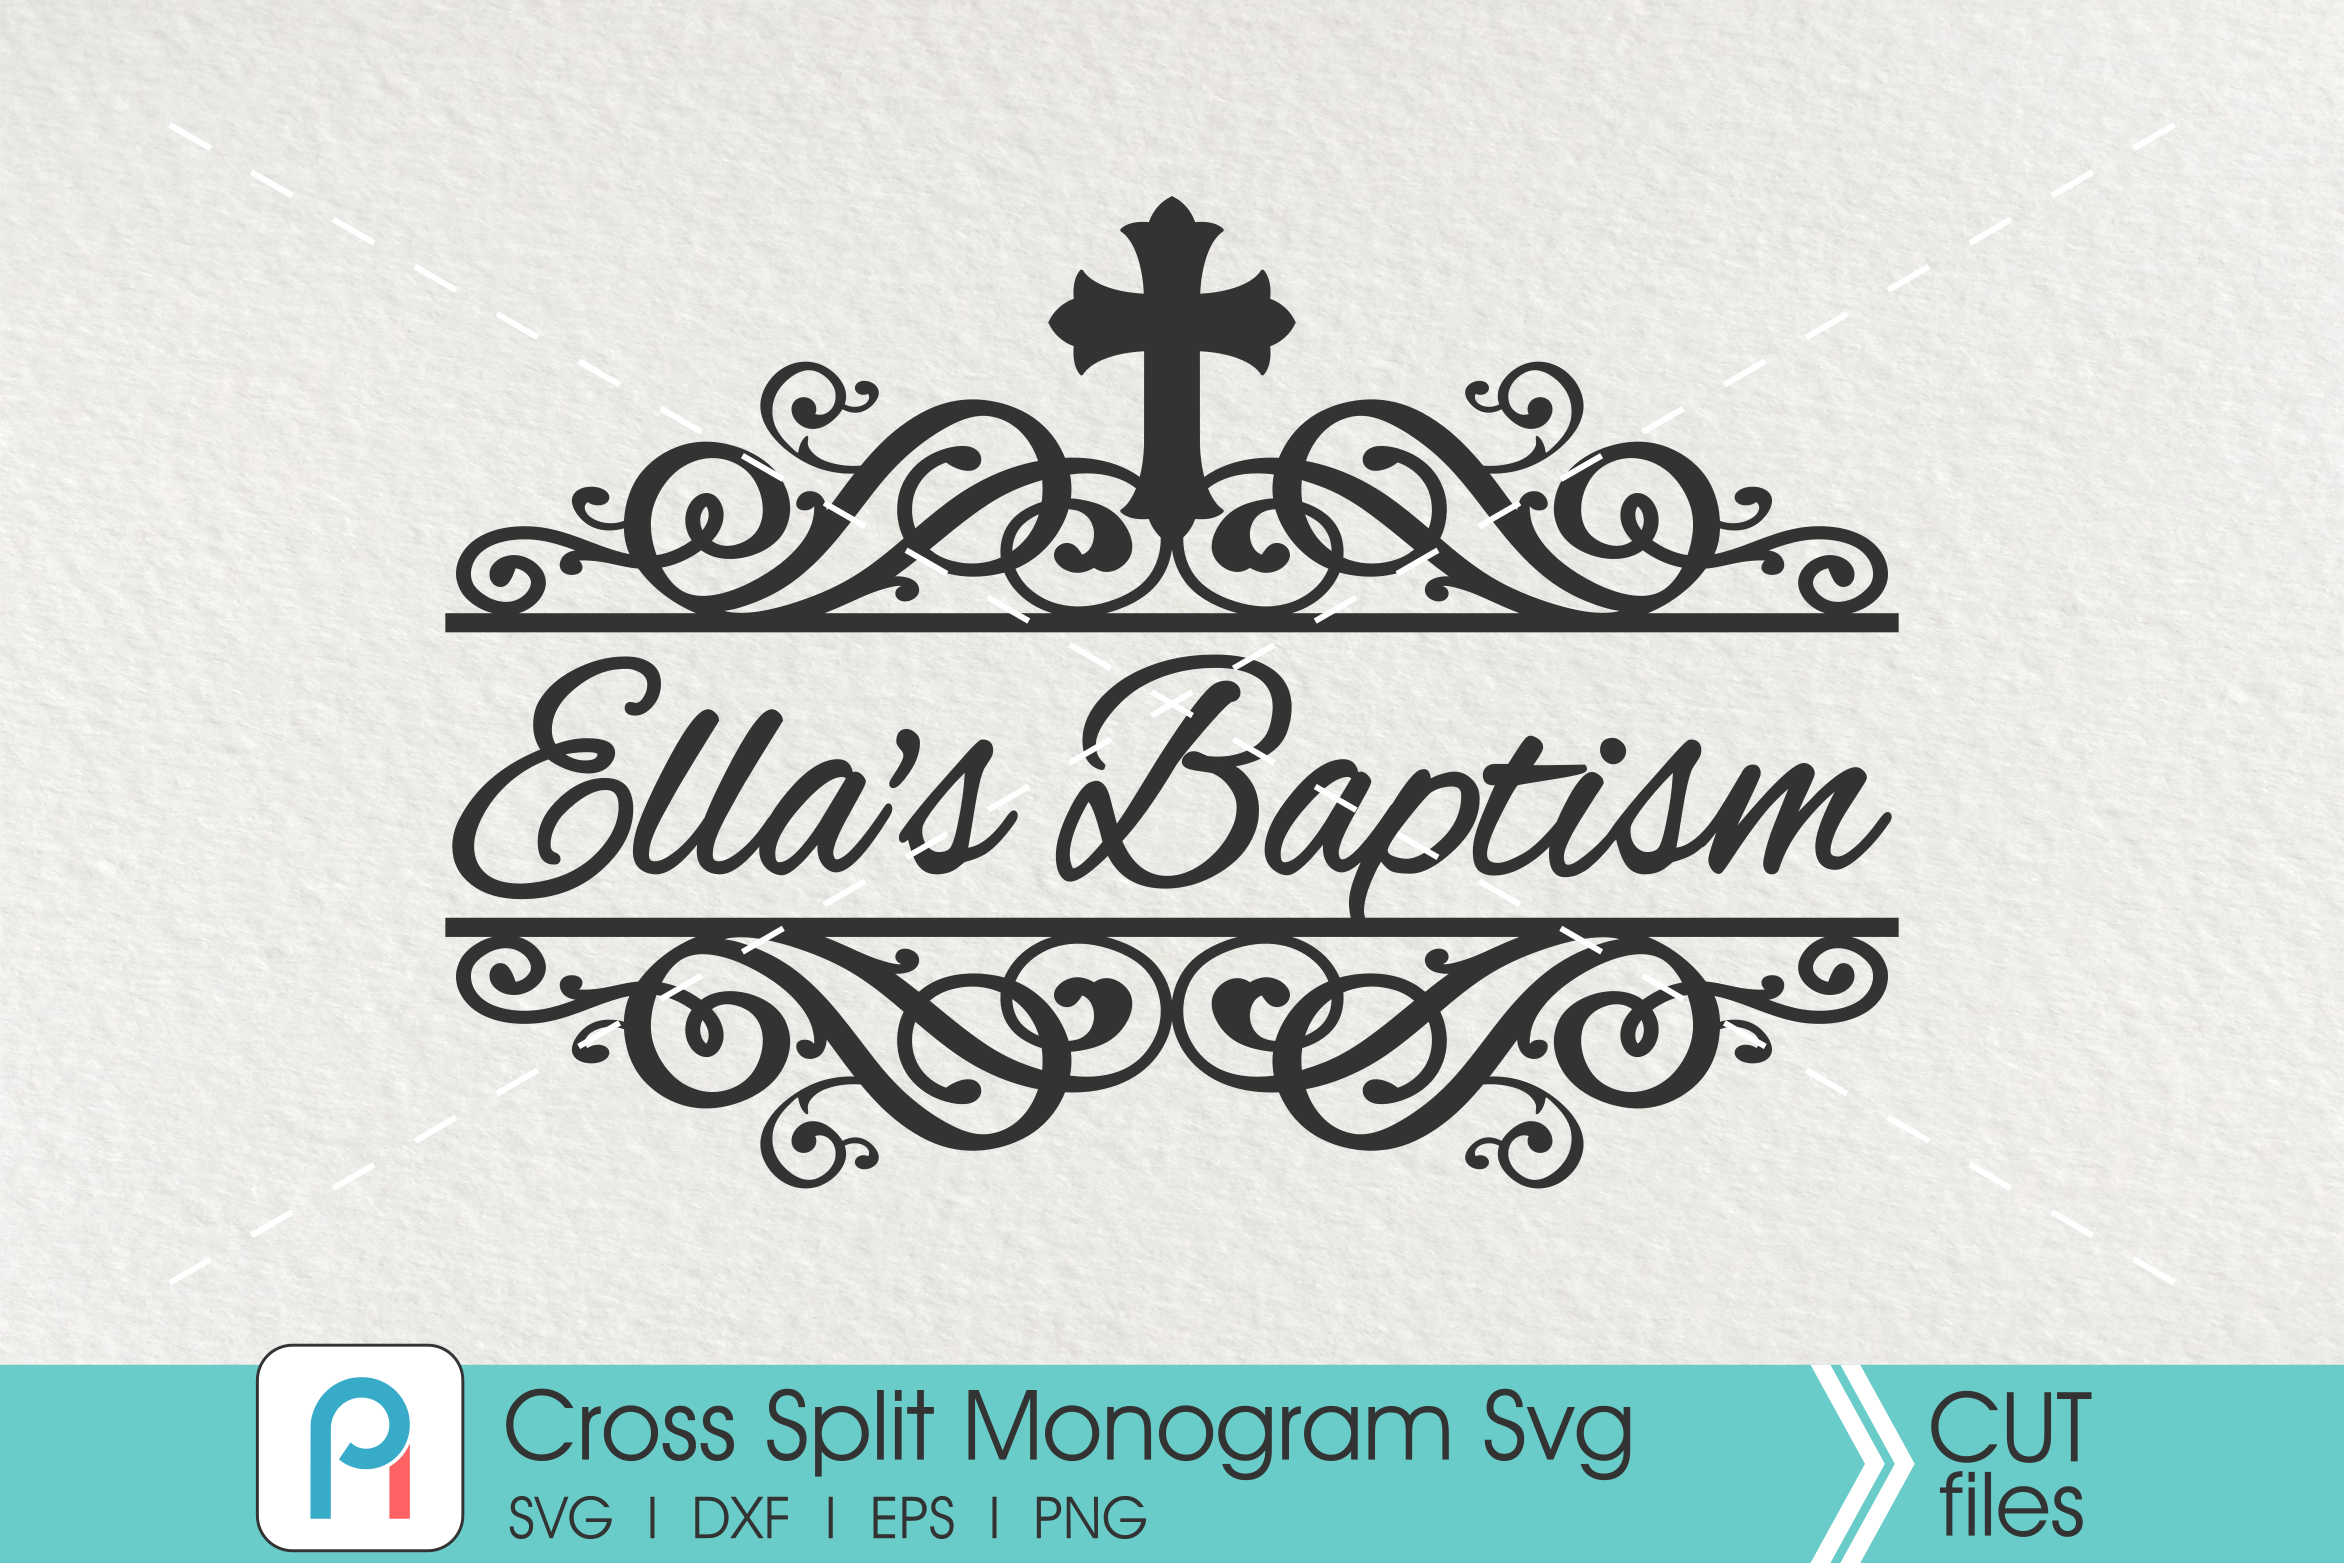 Download Free Cross Monogram Graphic By Pinoyartkreatib Creative Fabrica for Cricut Explore, Silhouette and other cutting machines.